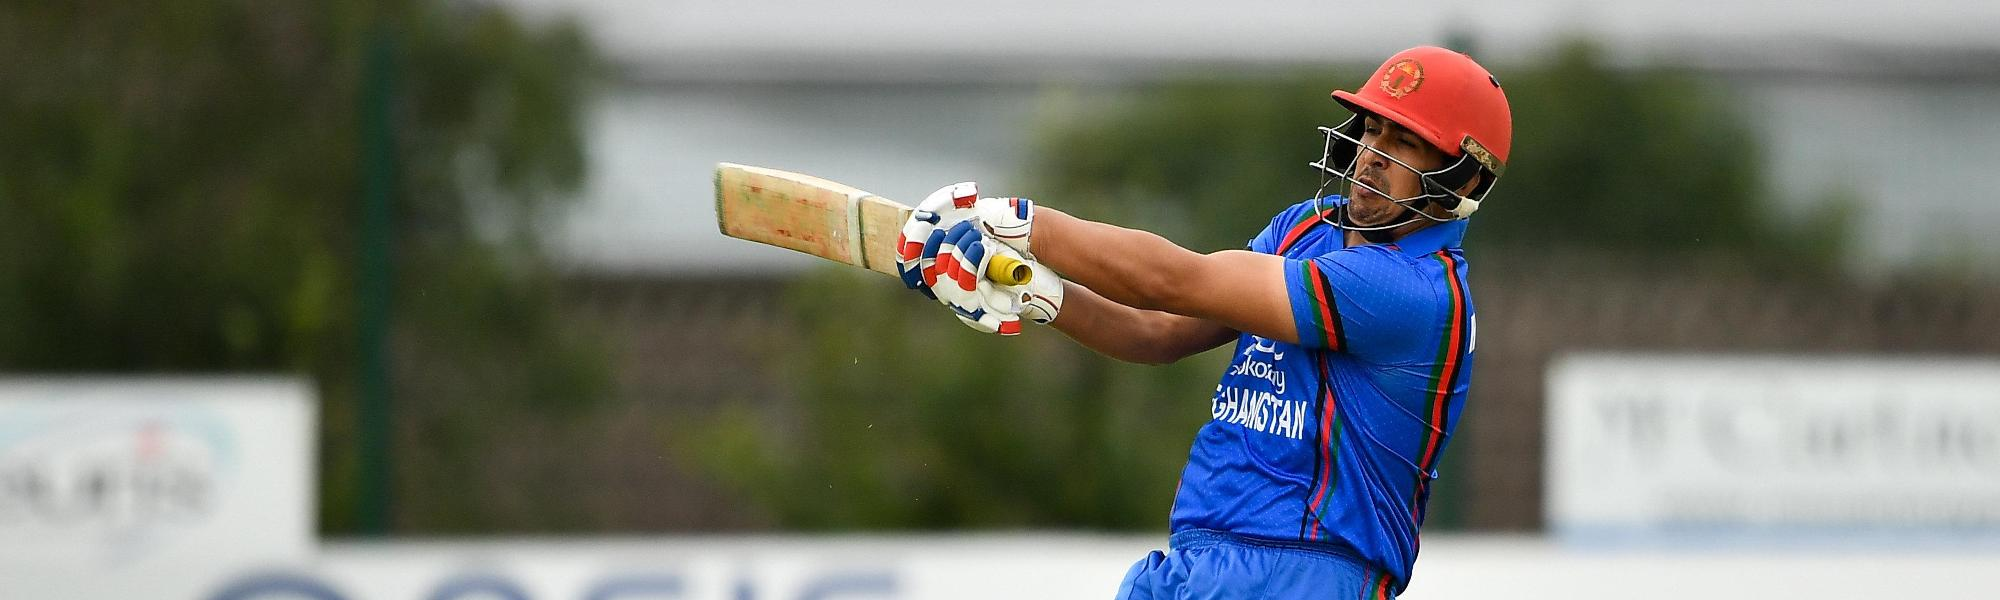 Hazratullah Zazai starred in the victory with a swashbuckling 33-ball 74